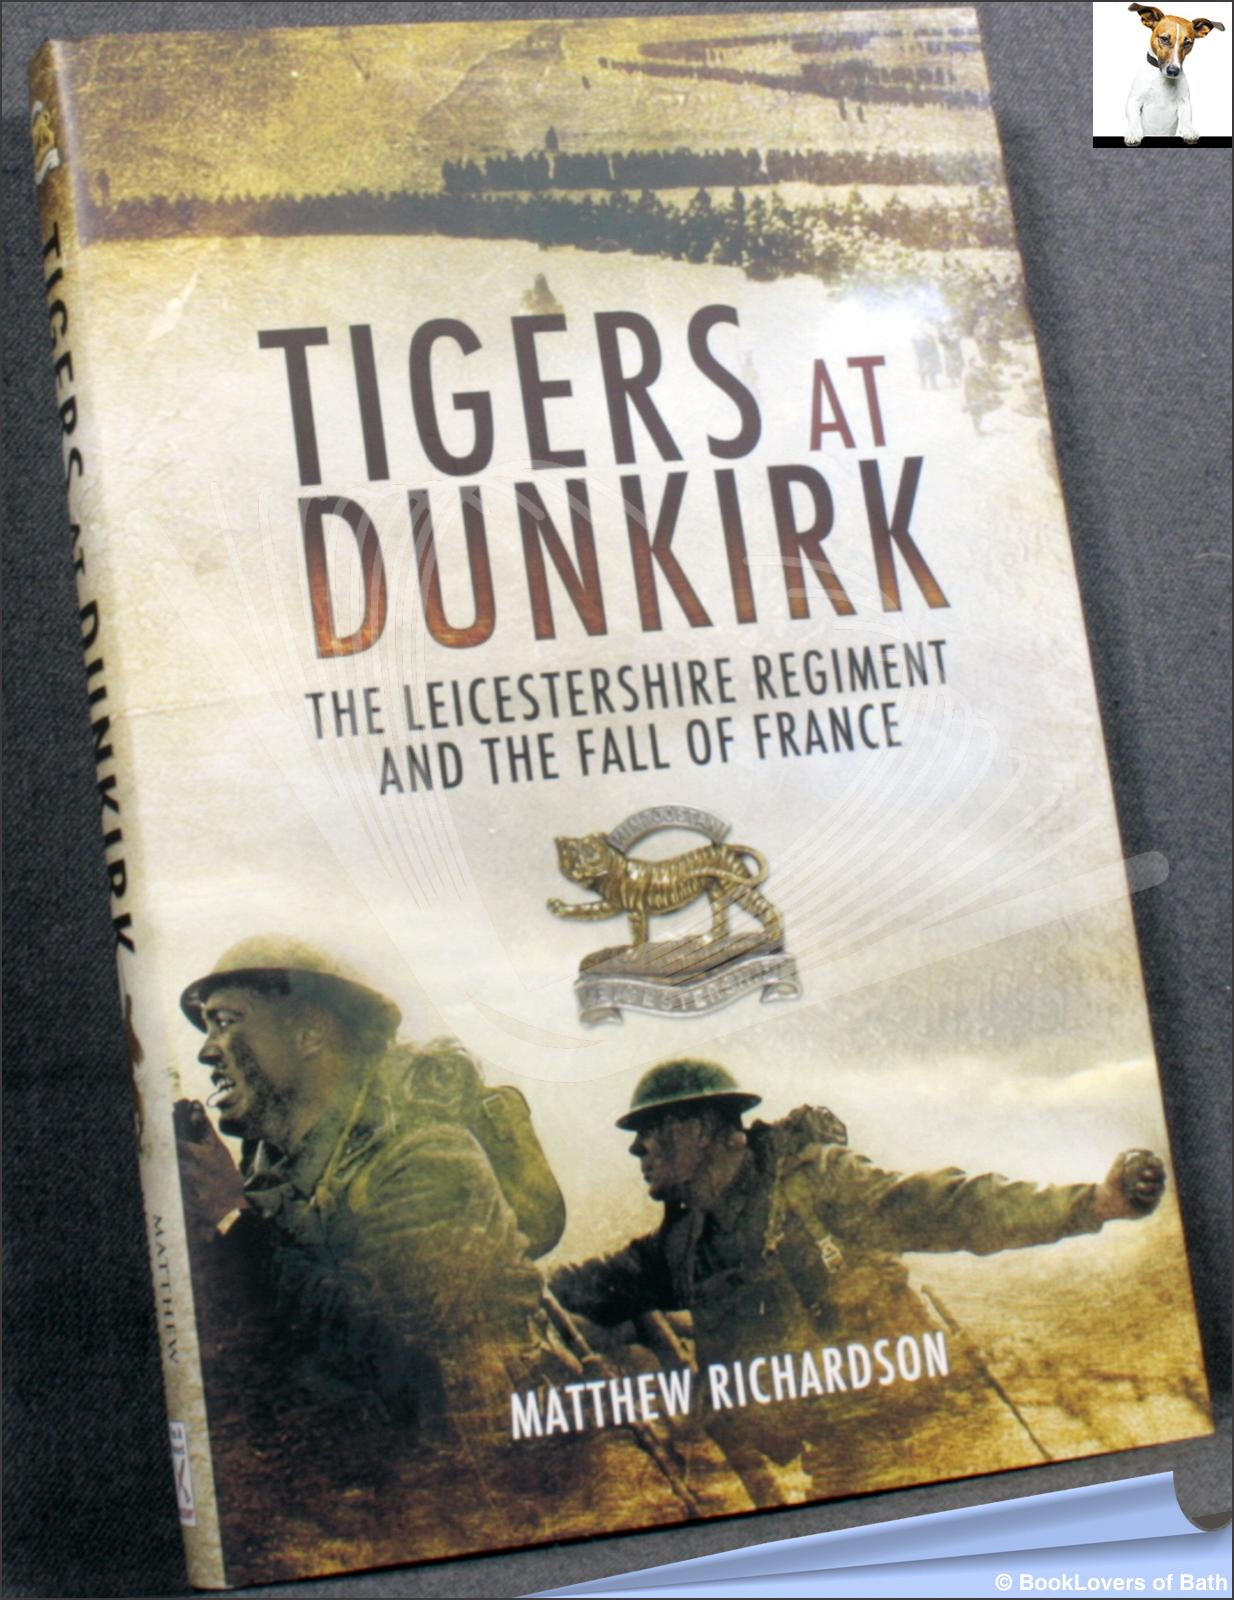 Tigers at Dunkirk: The Leicestershire Regiment and the Fall of France - Matthew Richardson